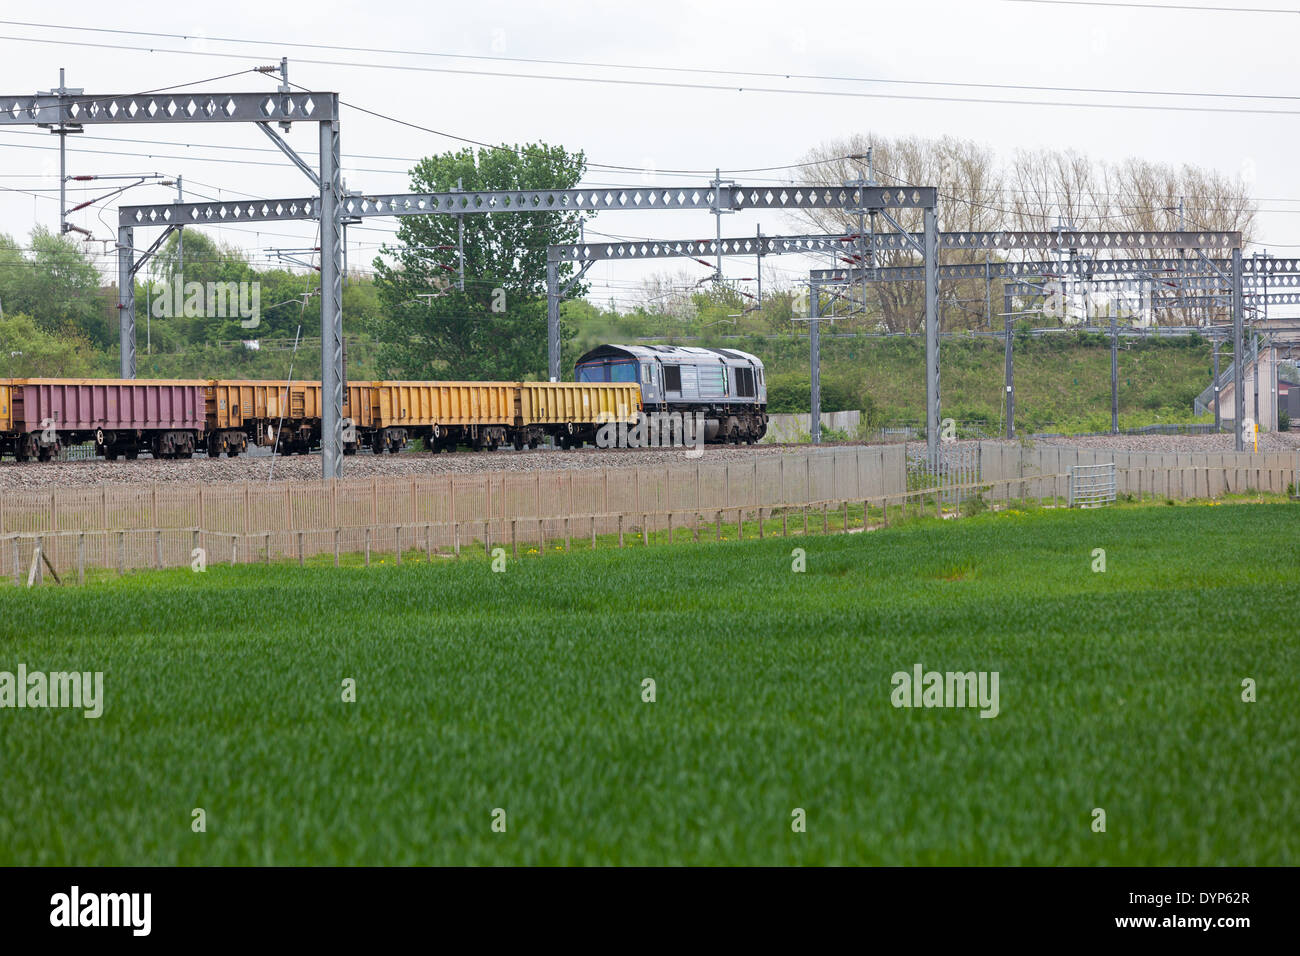 A Direct Rail Services freight train hauling Network Rail bogie ballast wagons. - Stock Image